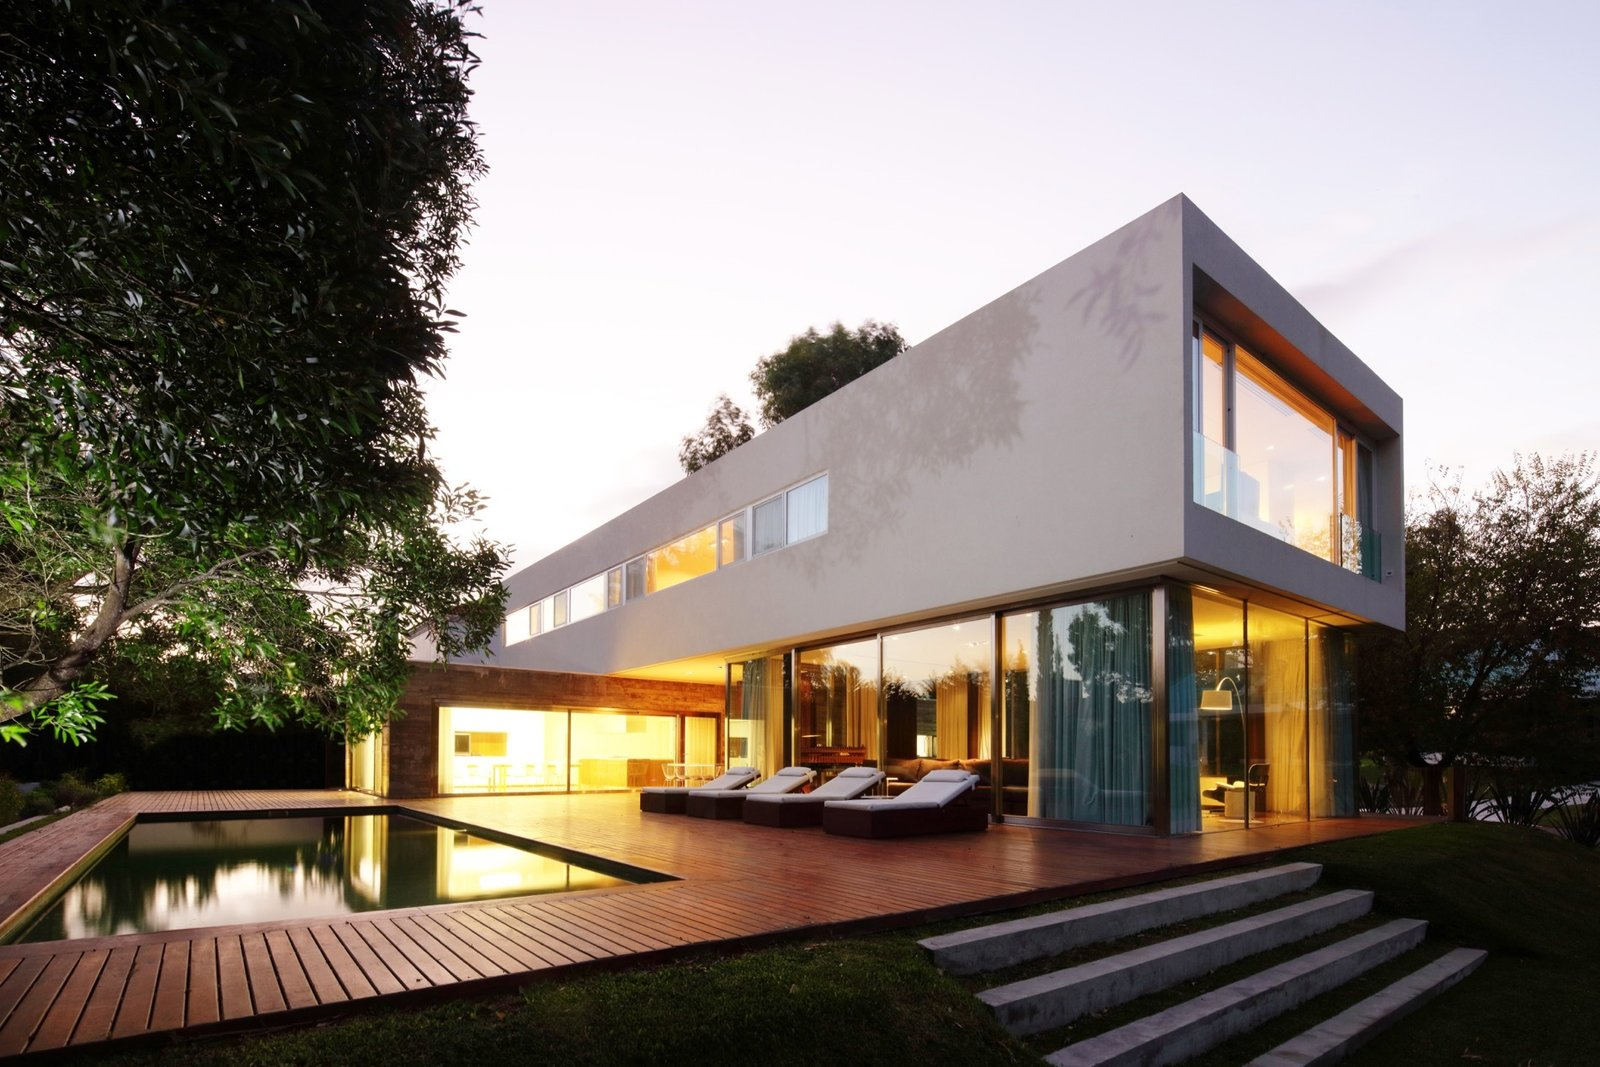 Outdoor, Trees, Grass, Swimming, Back Yard, Large, Wood, Concrete, Large, Metal, Concrete, Decking, and Hanging Wooden deck of the House at Los Cisnes at dawn. Concrete, Glass, Wood.  Best Outdoor Metal Swimming Photos from House at Los Cisnes